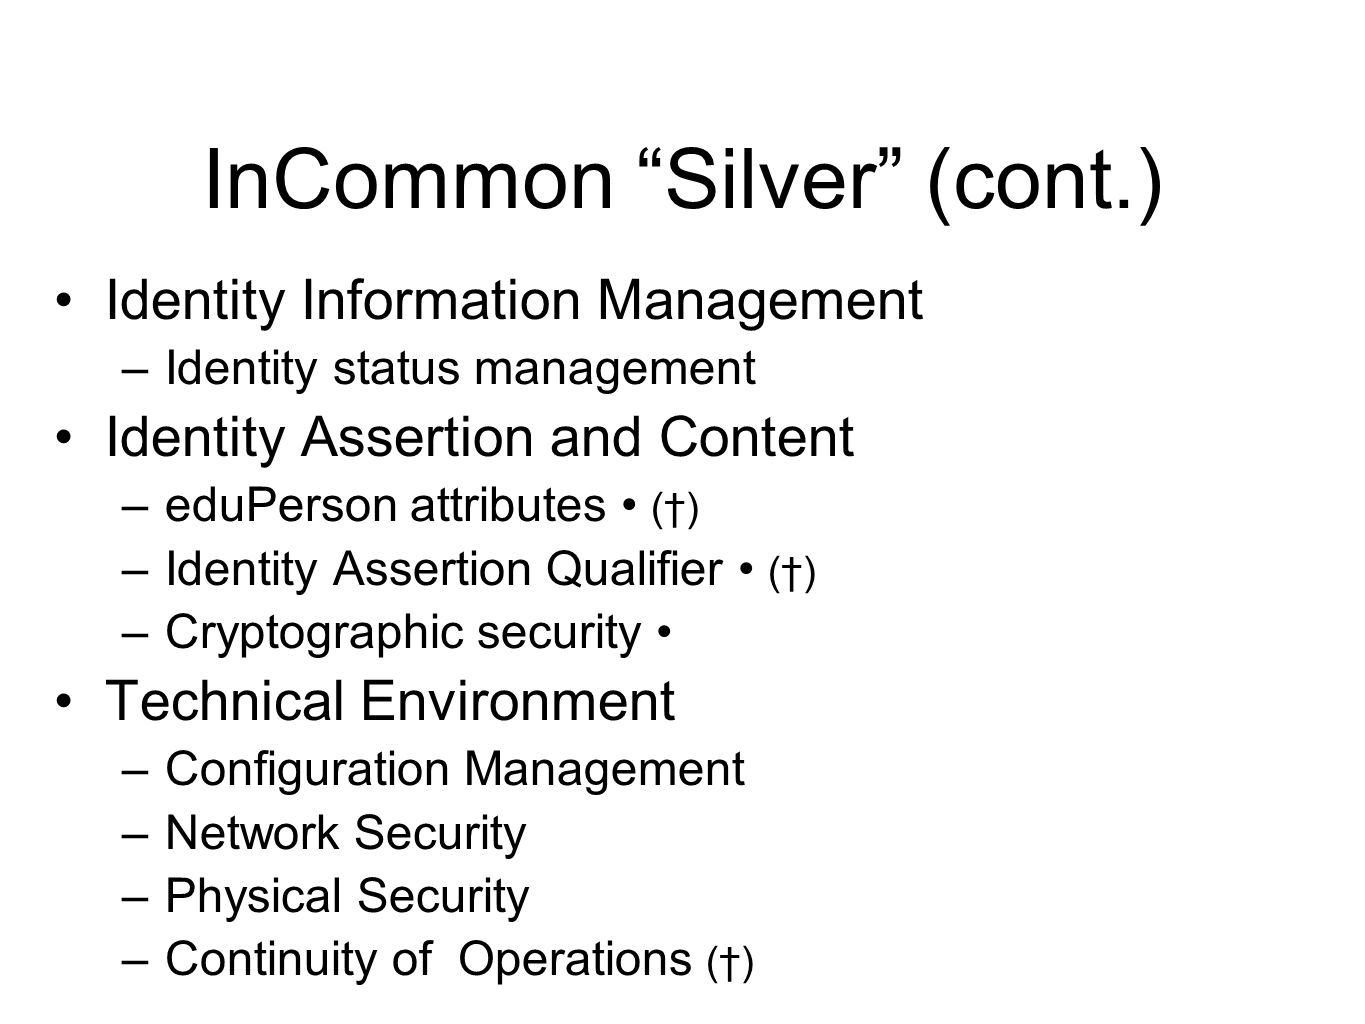 InCommon Silver (cont.) Identity Information Management –Identity status management Identity Assertion and Content –eduPerson attributes (†) –Identity Assertion Qualifier (†) –Cryptographic security Technical Environment –Configuration Management –Network Security –Physical Security –Continuity of Operations (†)